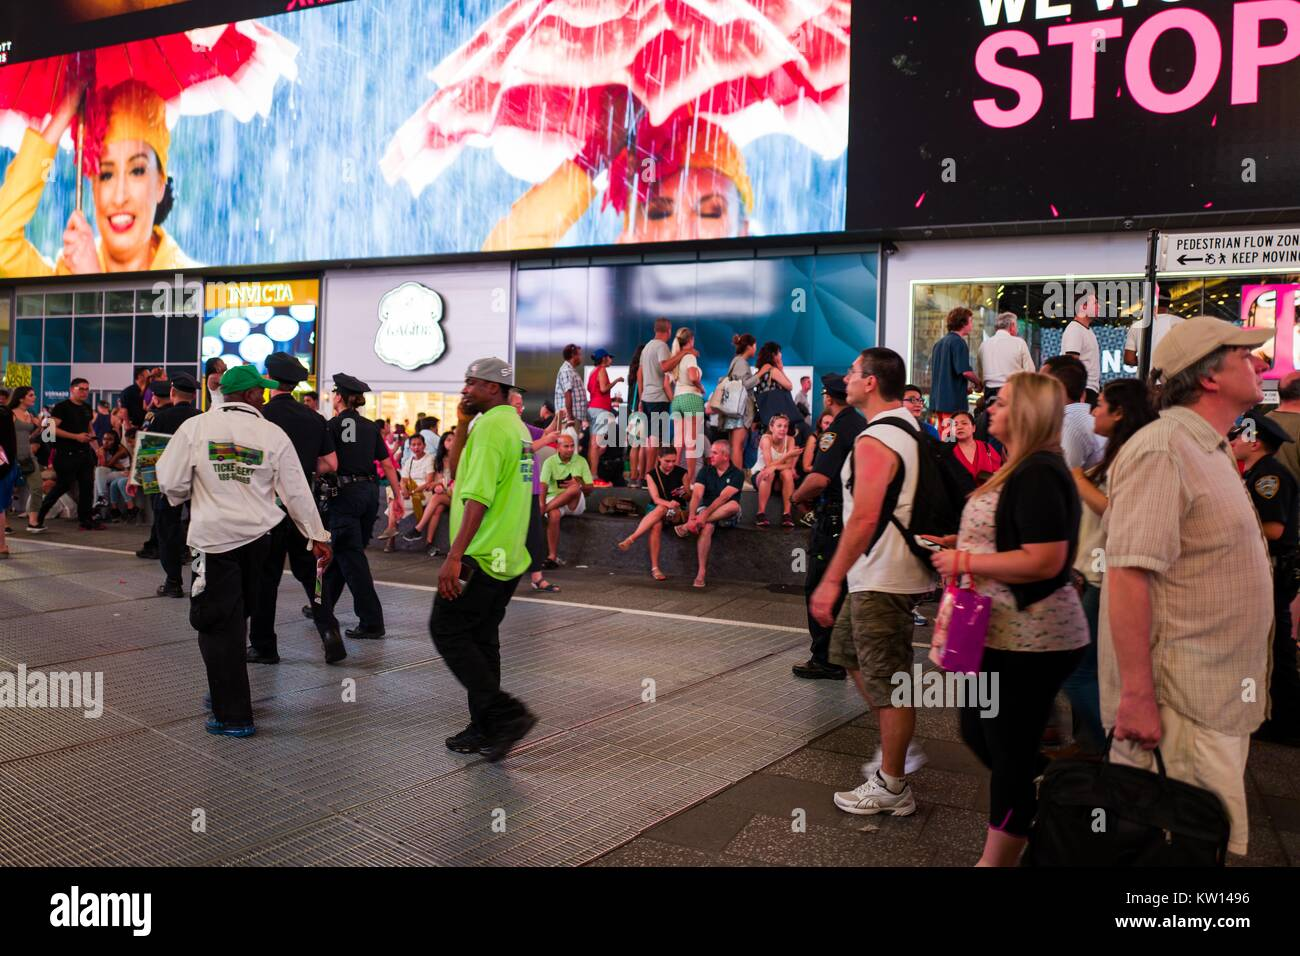 During a Black Lives Matter protest in New York City's Times Square following the shooting deaths of Alton Sterling - Stock Image